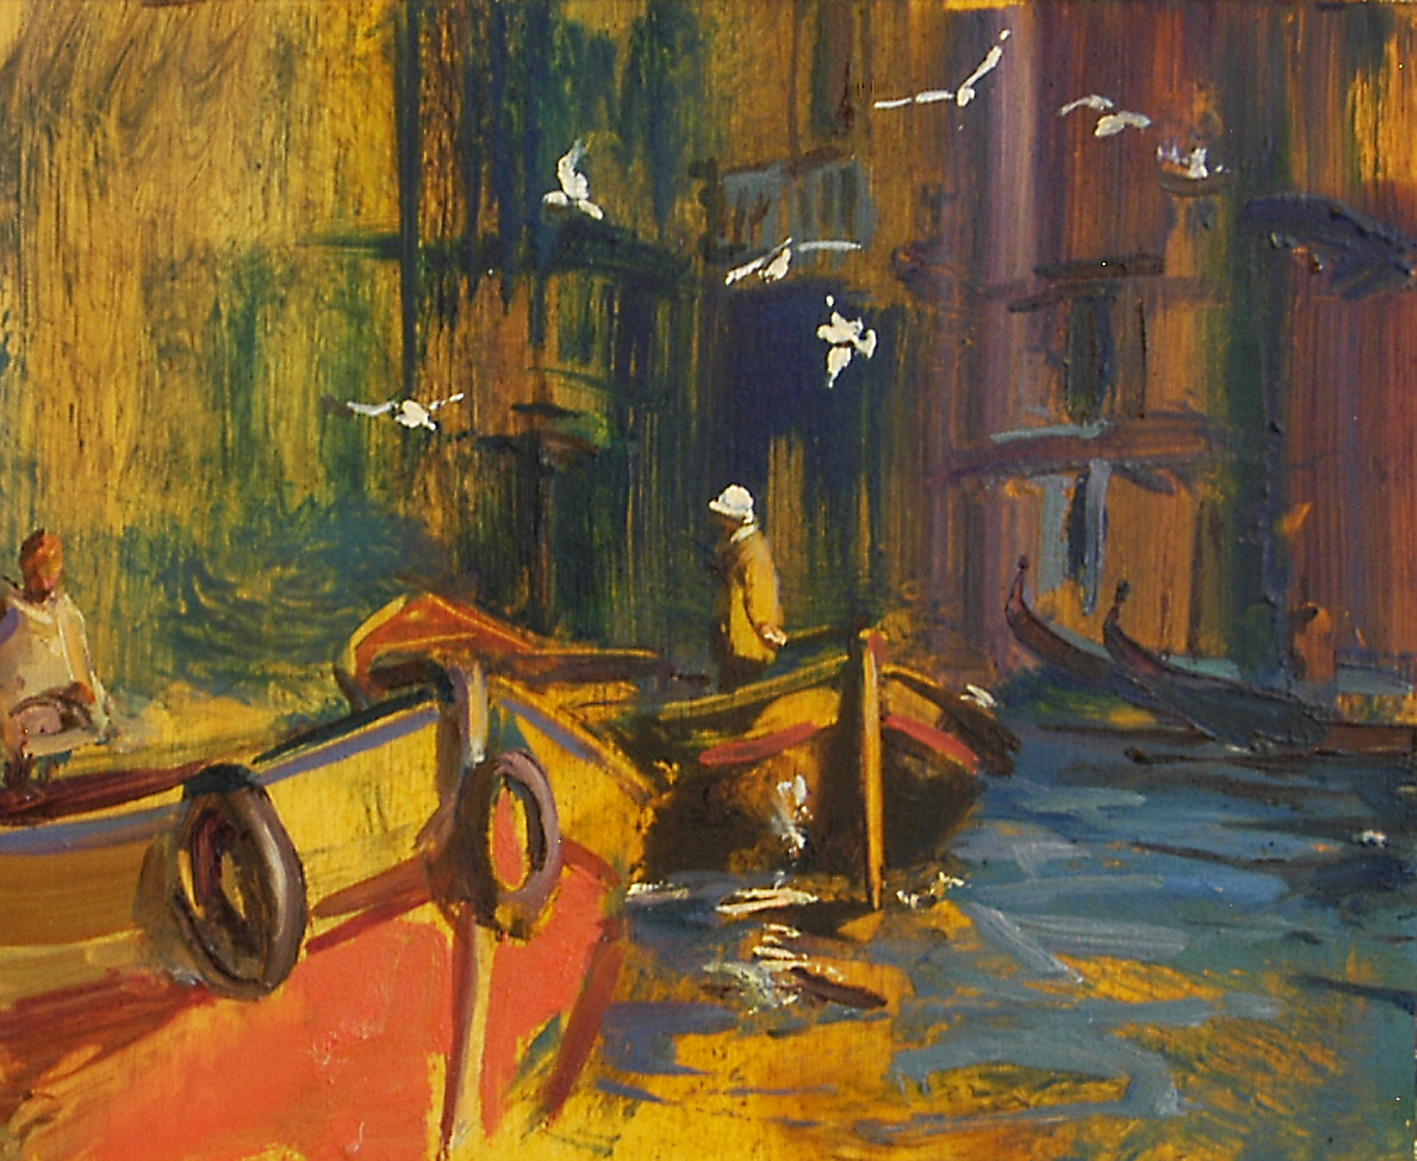 Workers Boat, Rialto Markets - oil on board - 25 x 31 cm - SOLD